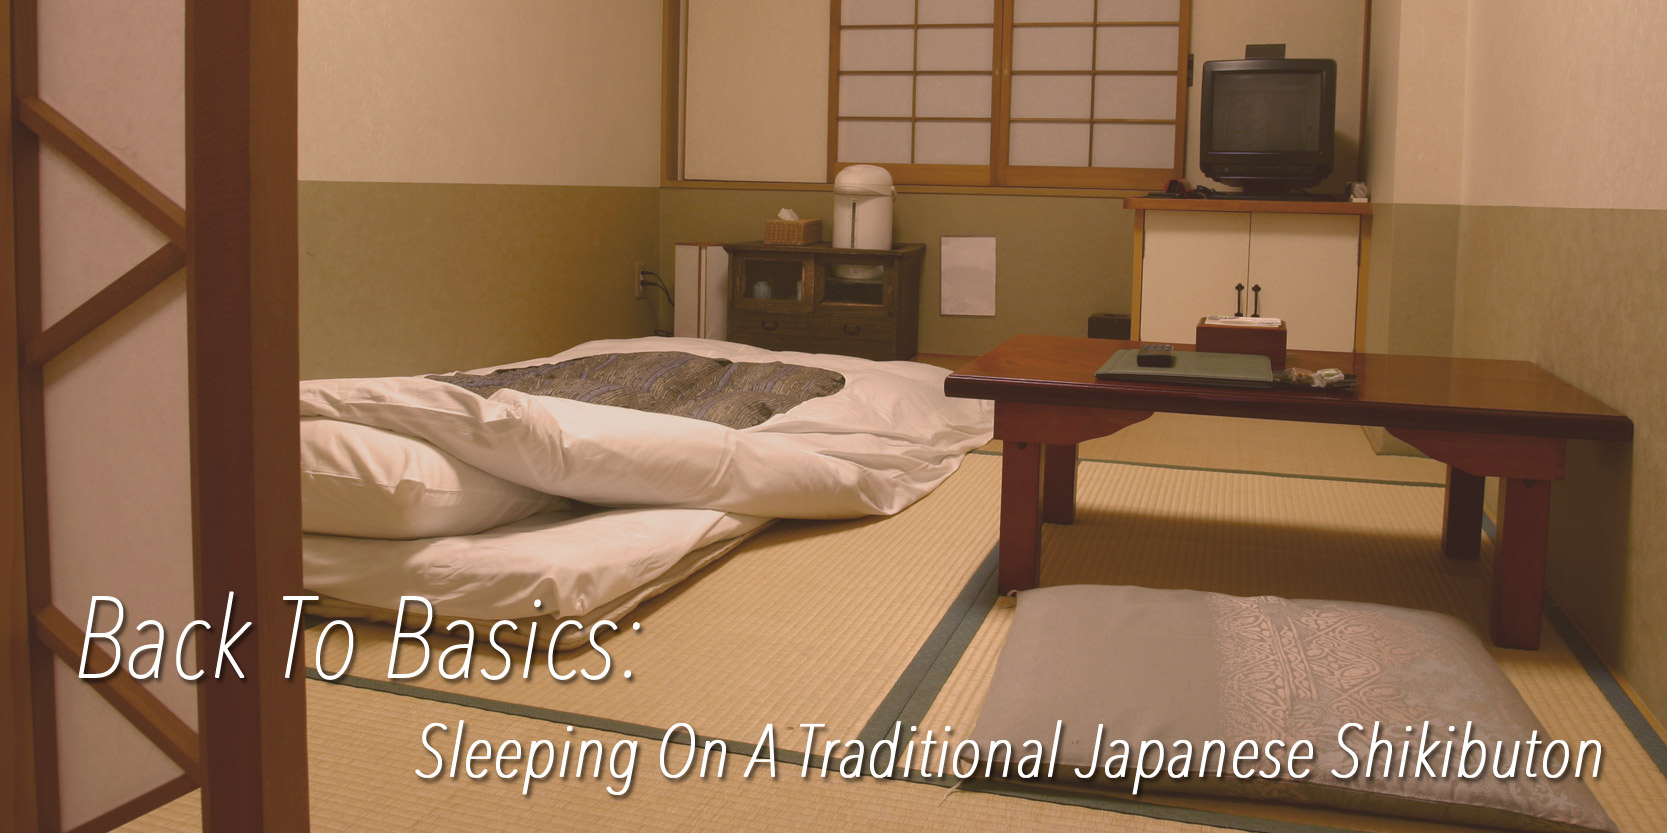 Japanese Futon Sets Blog Back To Basics Sleeping On A Traditional Japanese Shikibuton